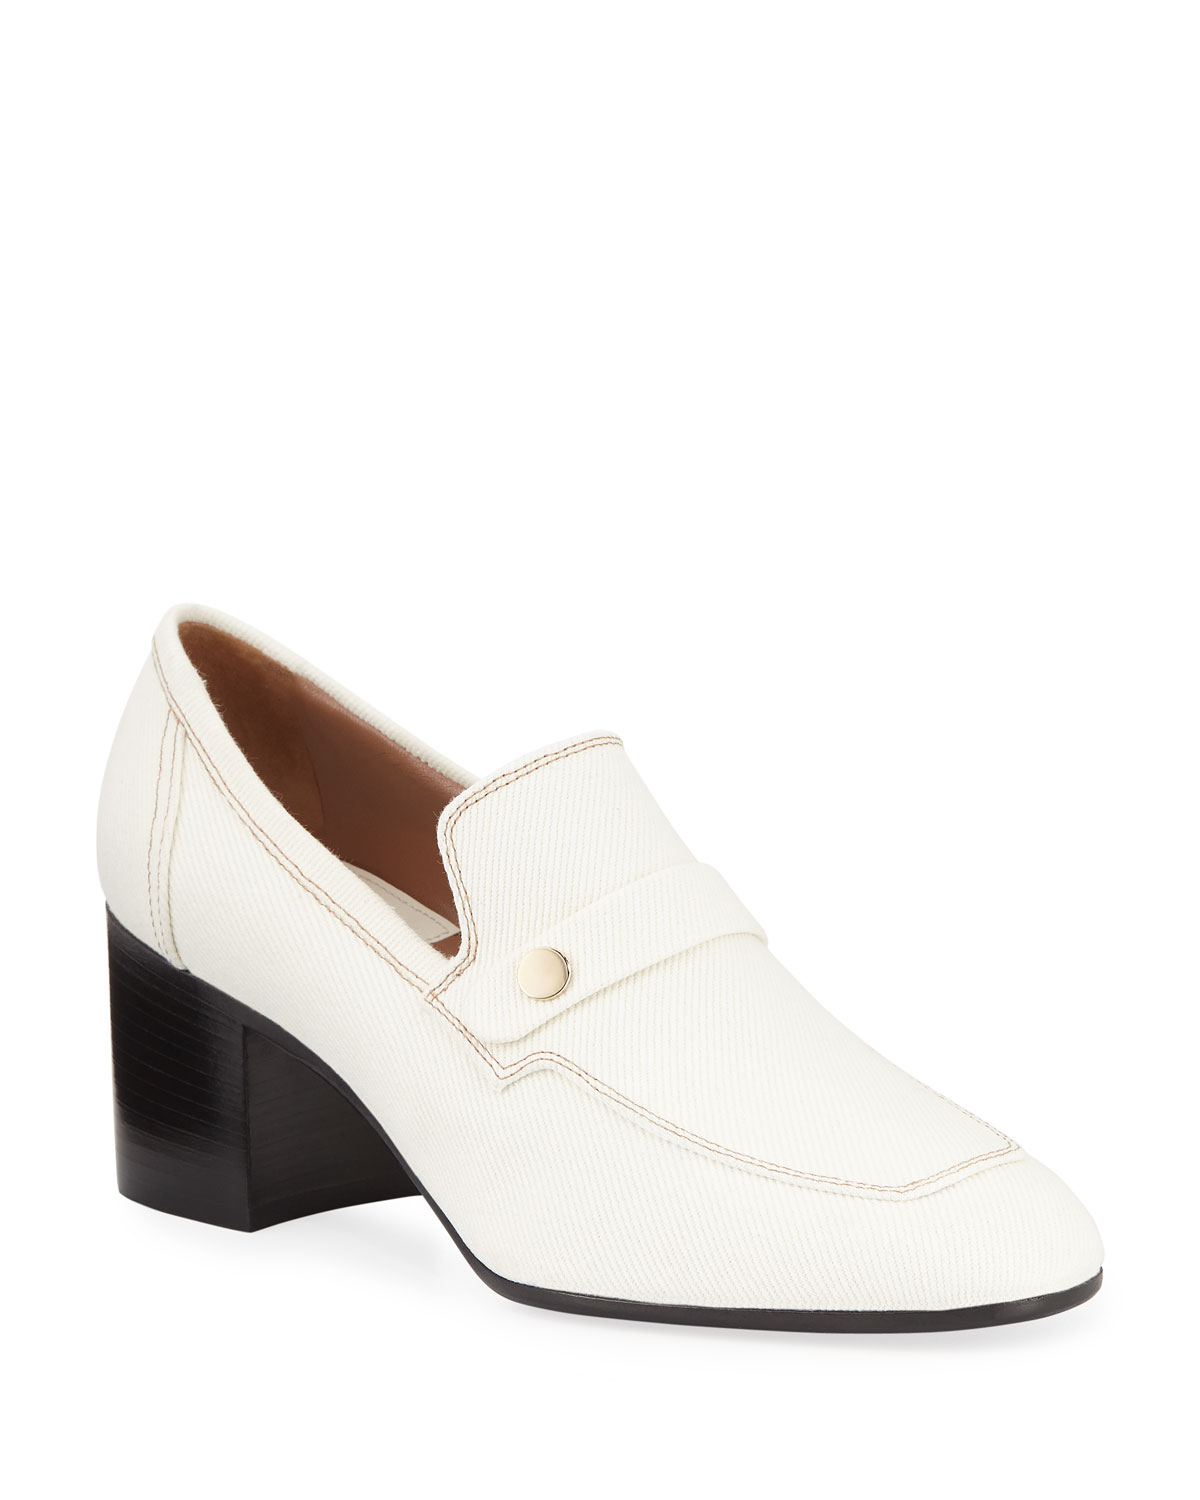 Laurence Dacade Loafers TRACY HEELED CANVAS PENNY LOAFERS